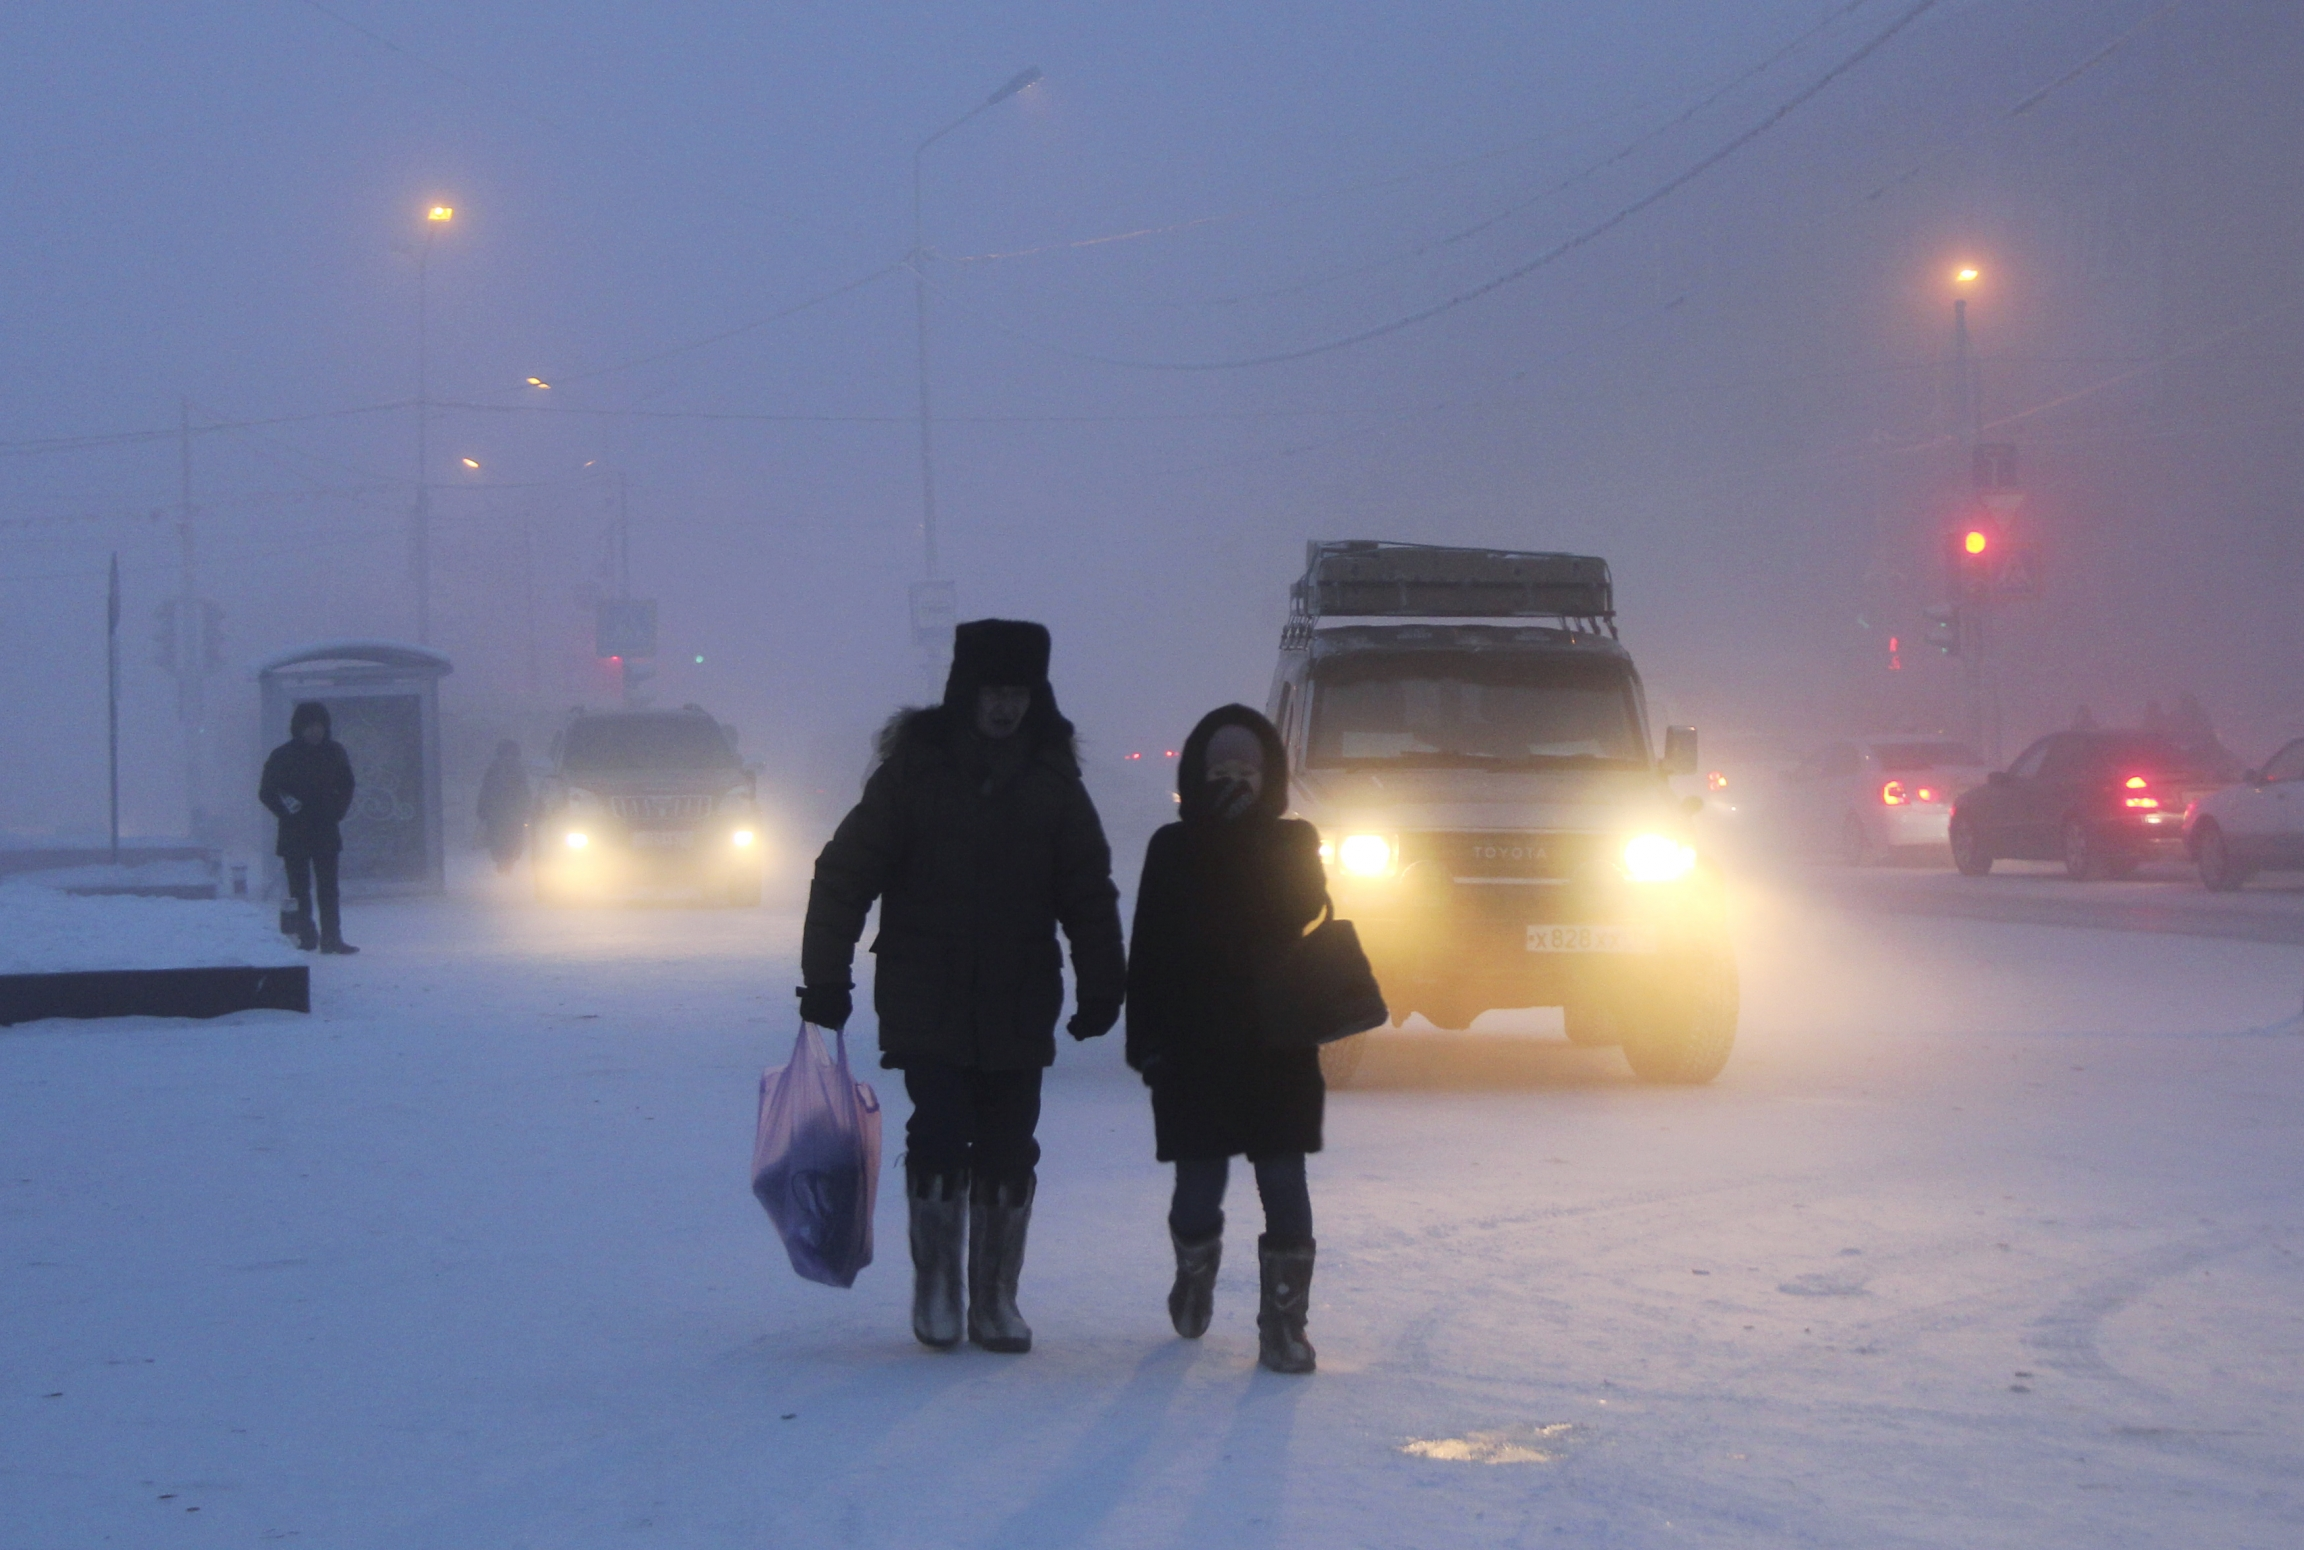 Two people walk in a snowy street scene.